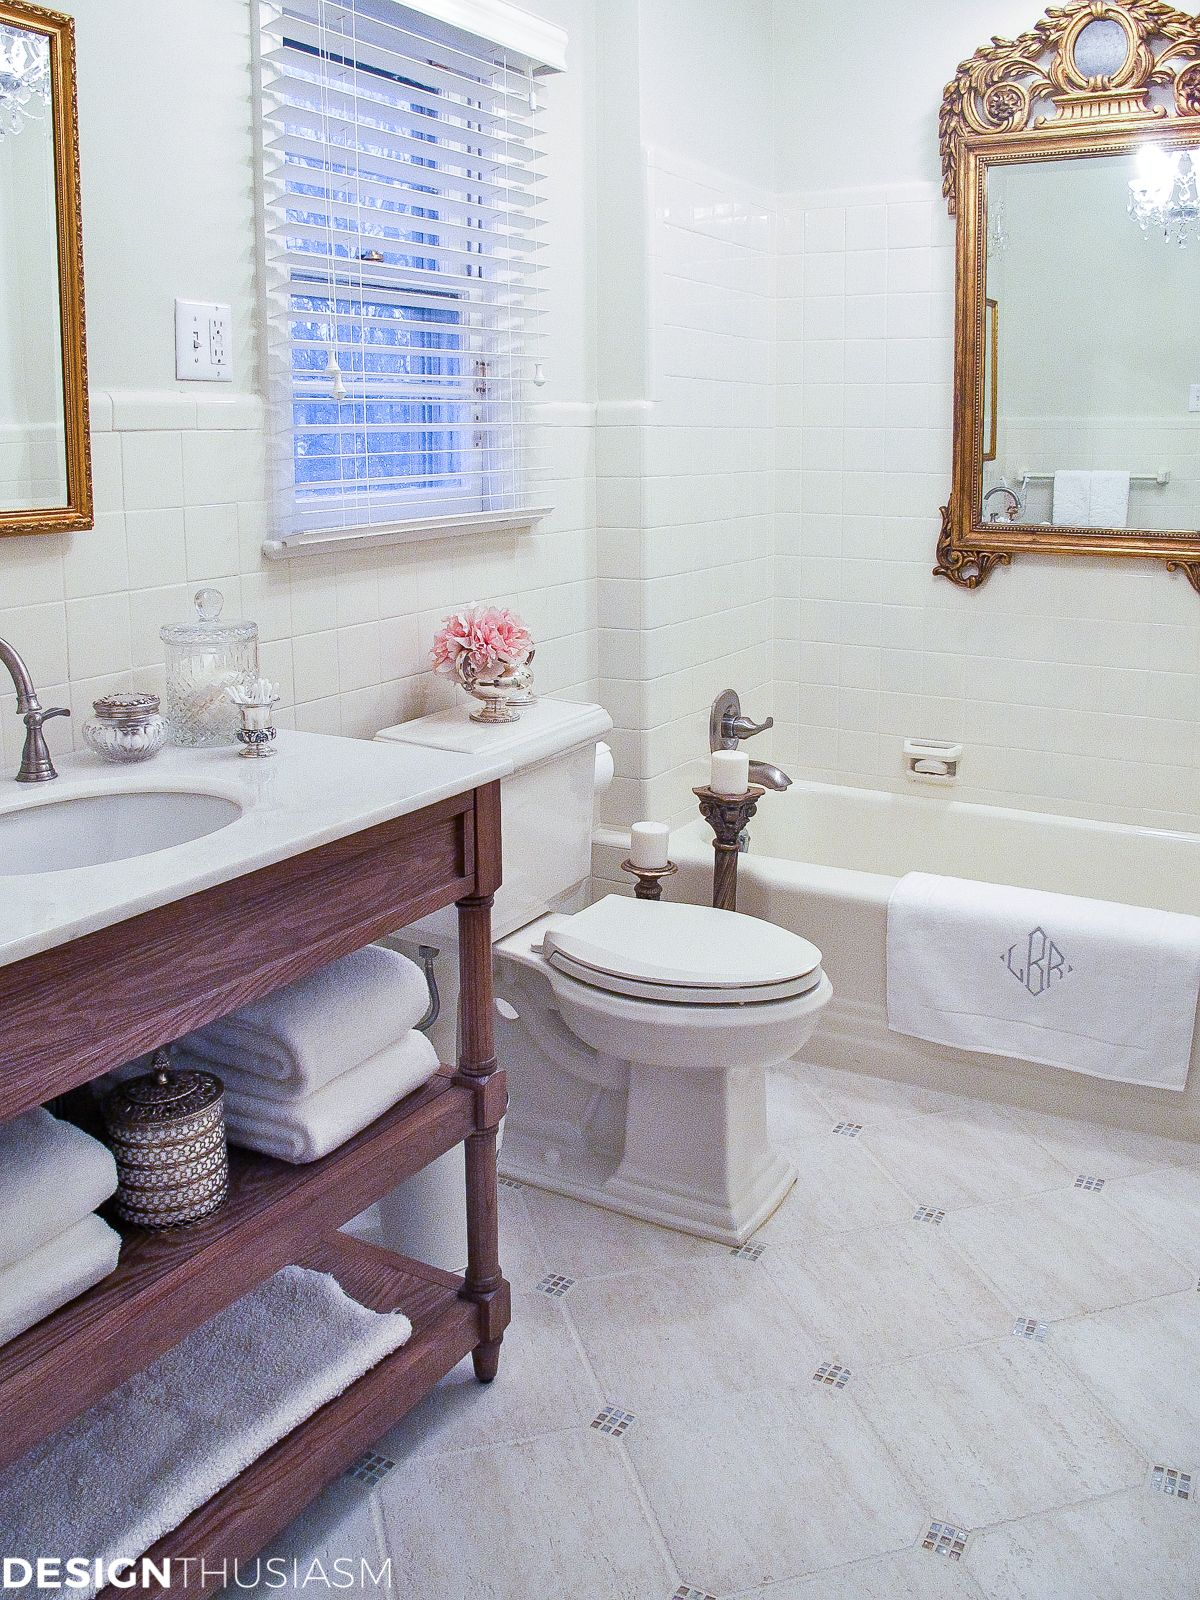 Bathroom Ideas On A Budget Creamy White Painted Tile